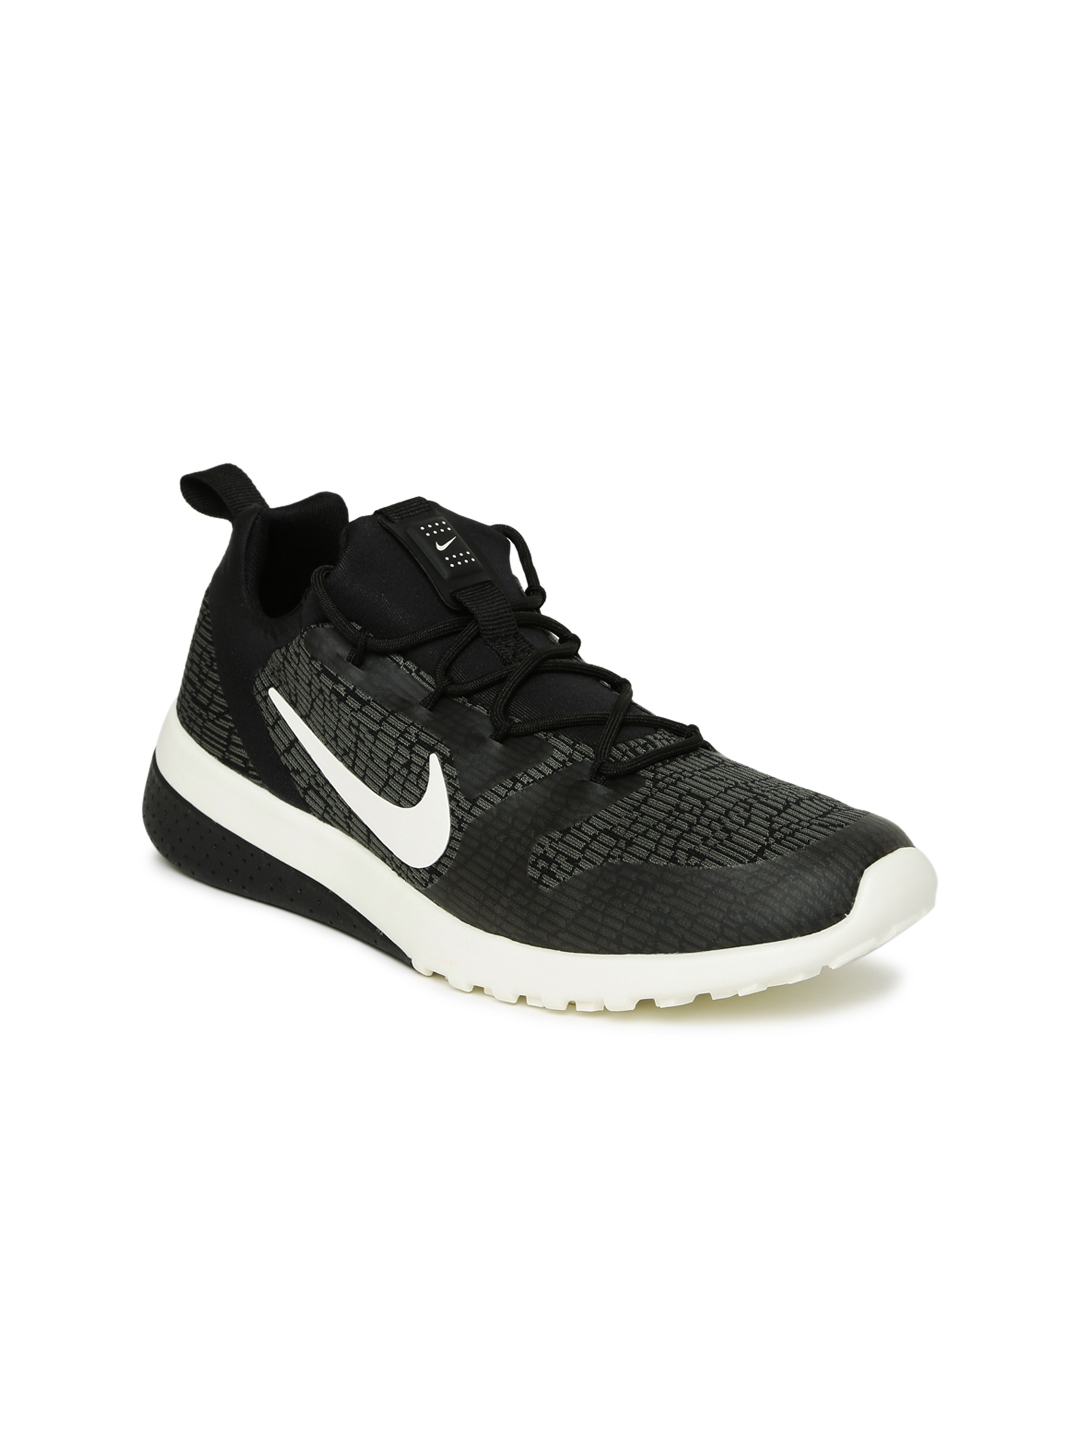 8550d5741d070 Buy Nike Women Black & Grey CK RACER Sneakers - Casual Shoes for ...